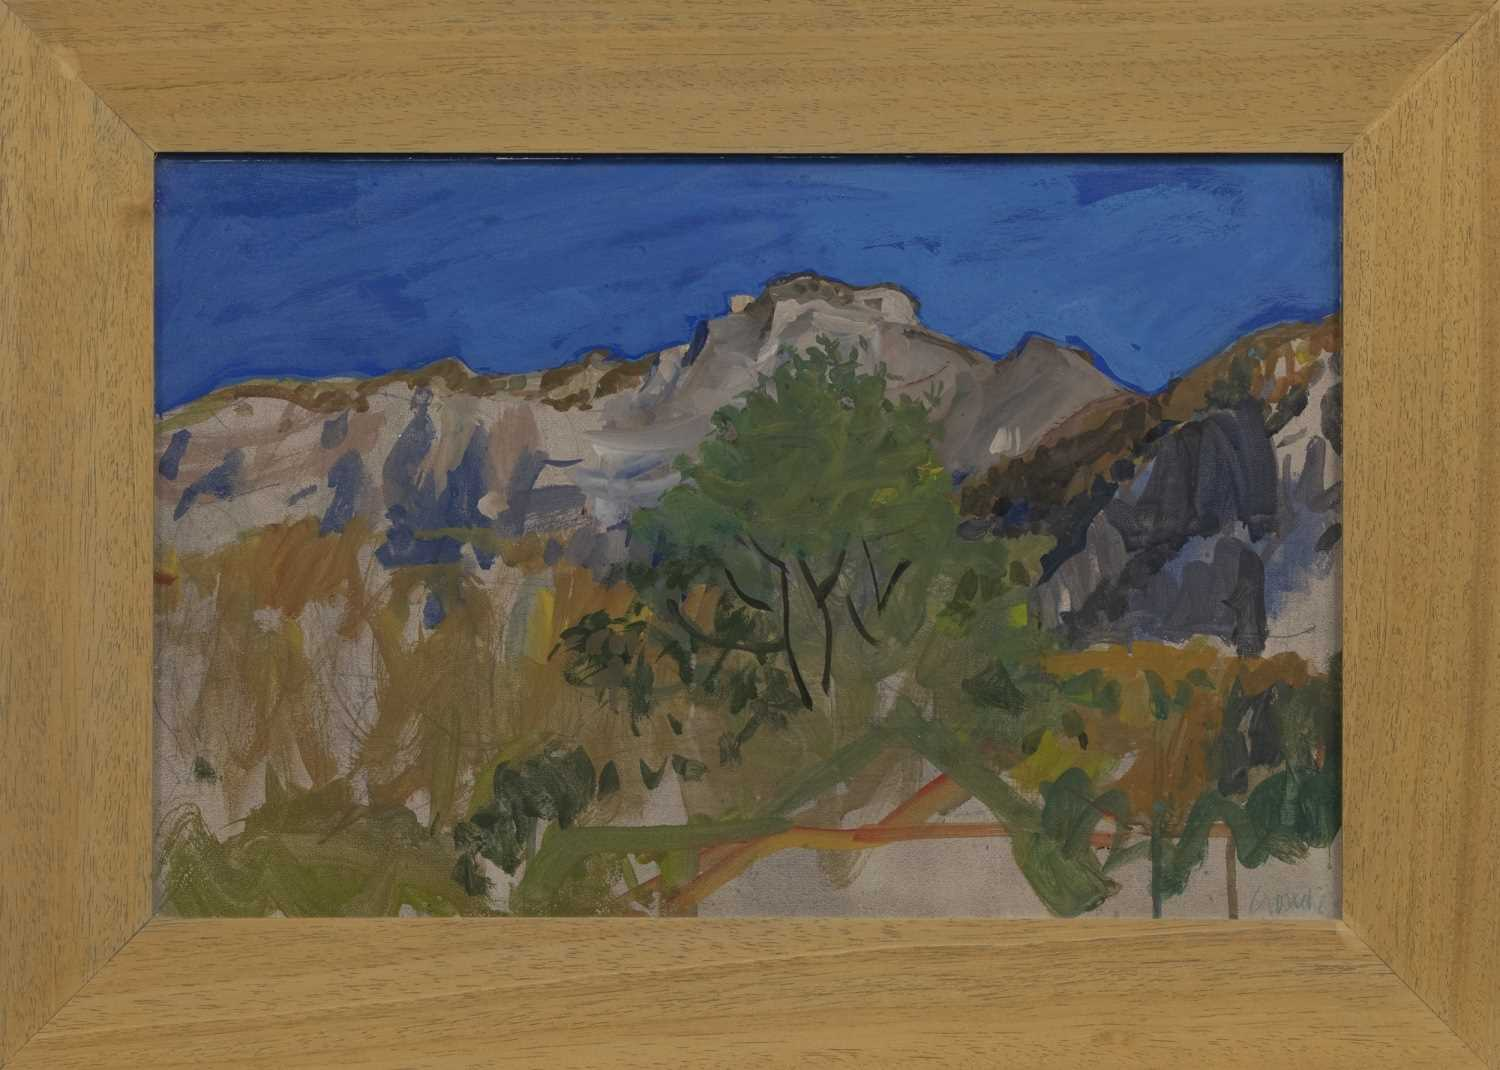 Lot 609 - MONT VEYRIER, A MIXED MEDIA BY ALEXANDER GOUDIE